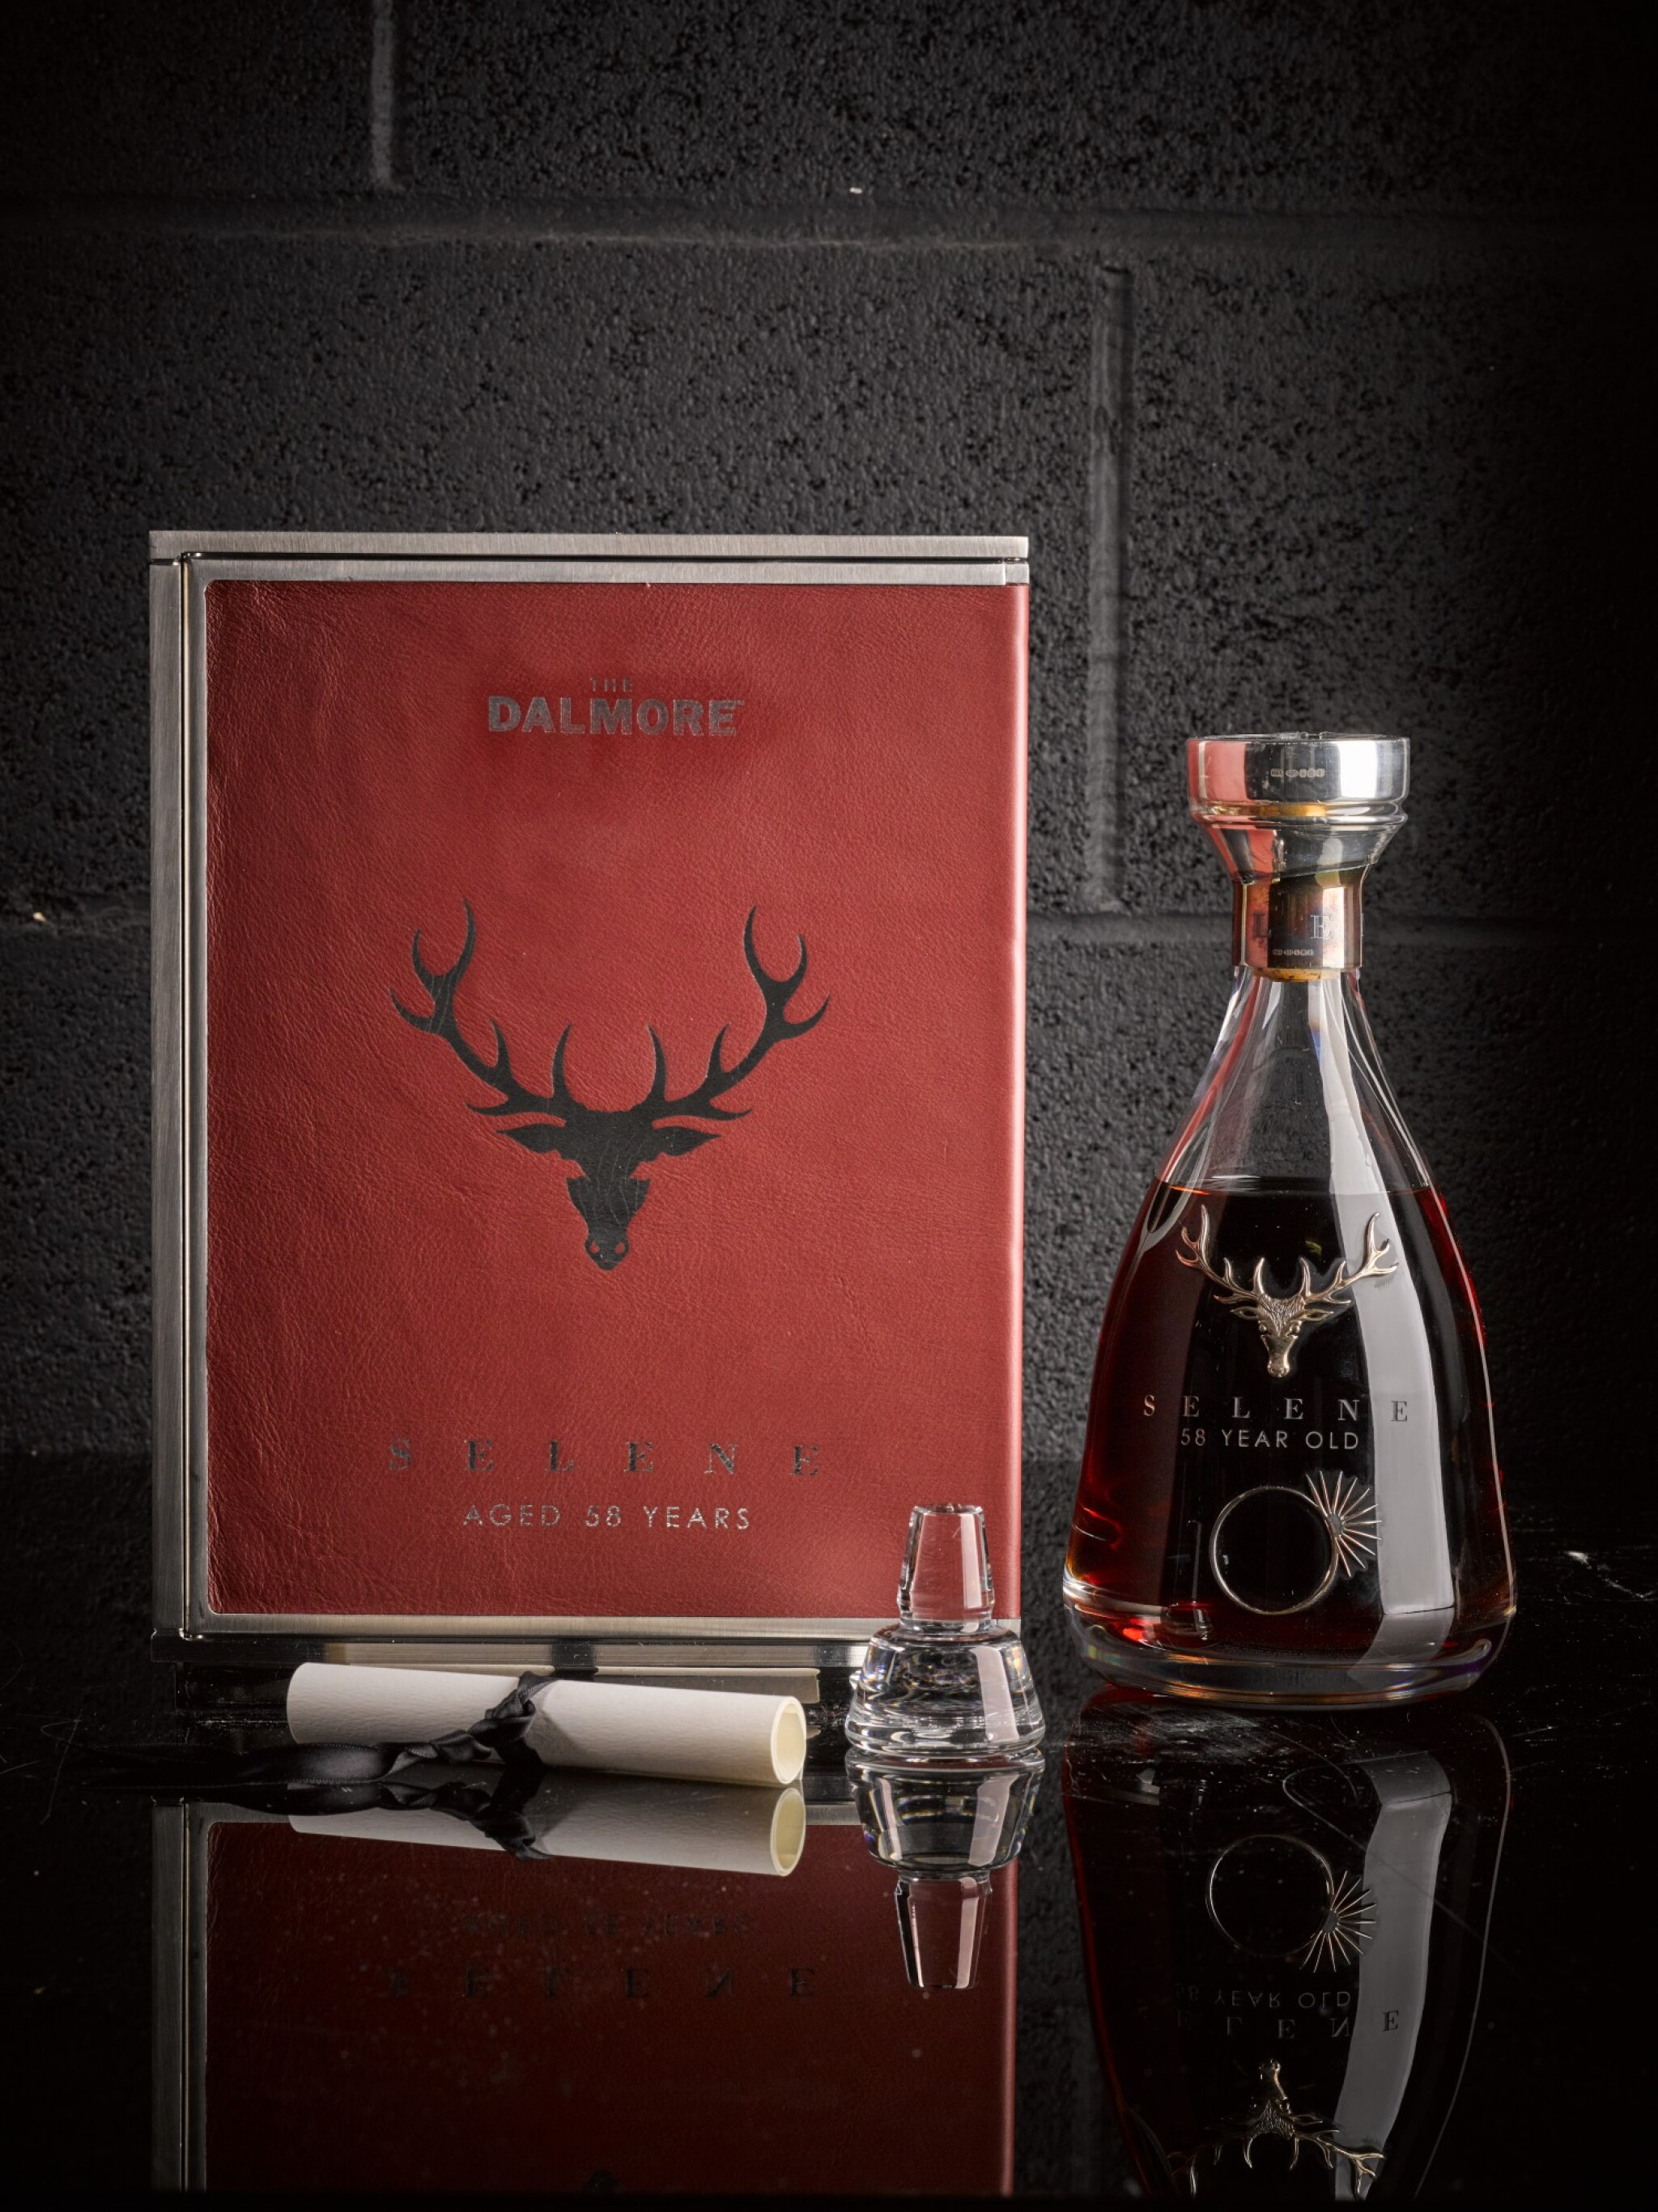 View 1 of Lot 1. The Dalmore 58 Year Old Selene 44.0 abv 1951     .